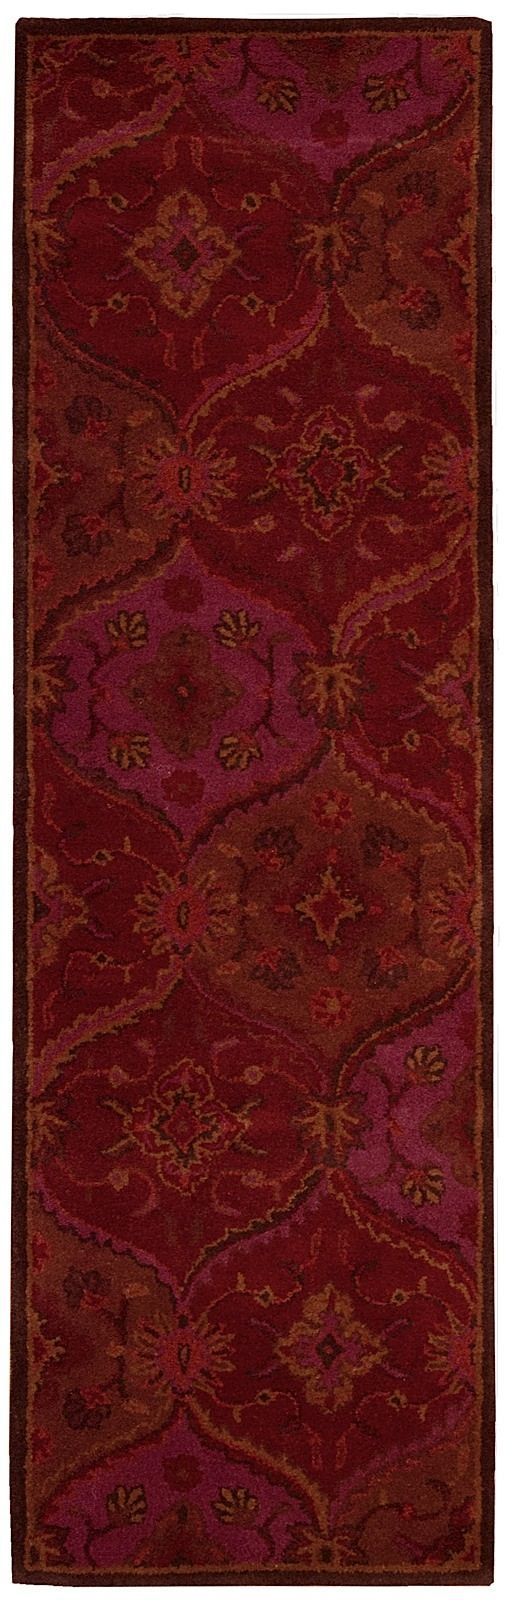 nourison india house transitional area rug collection